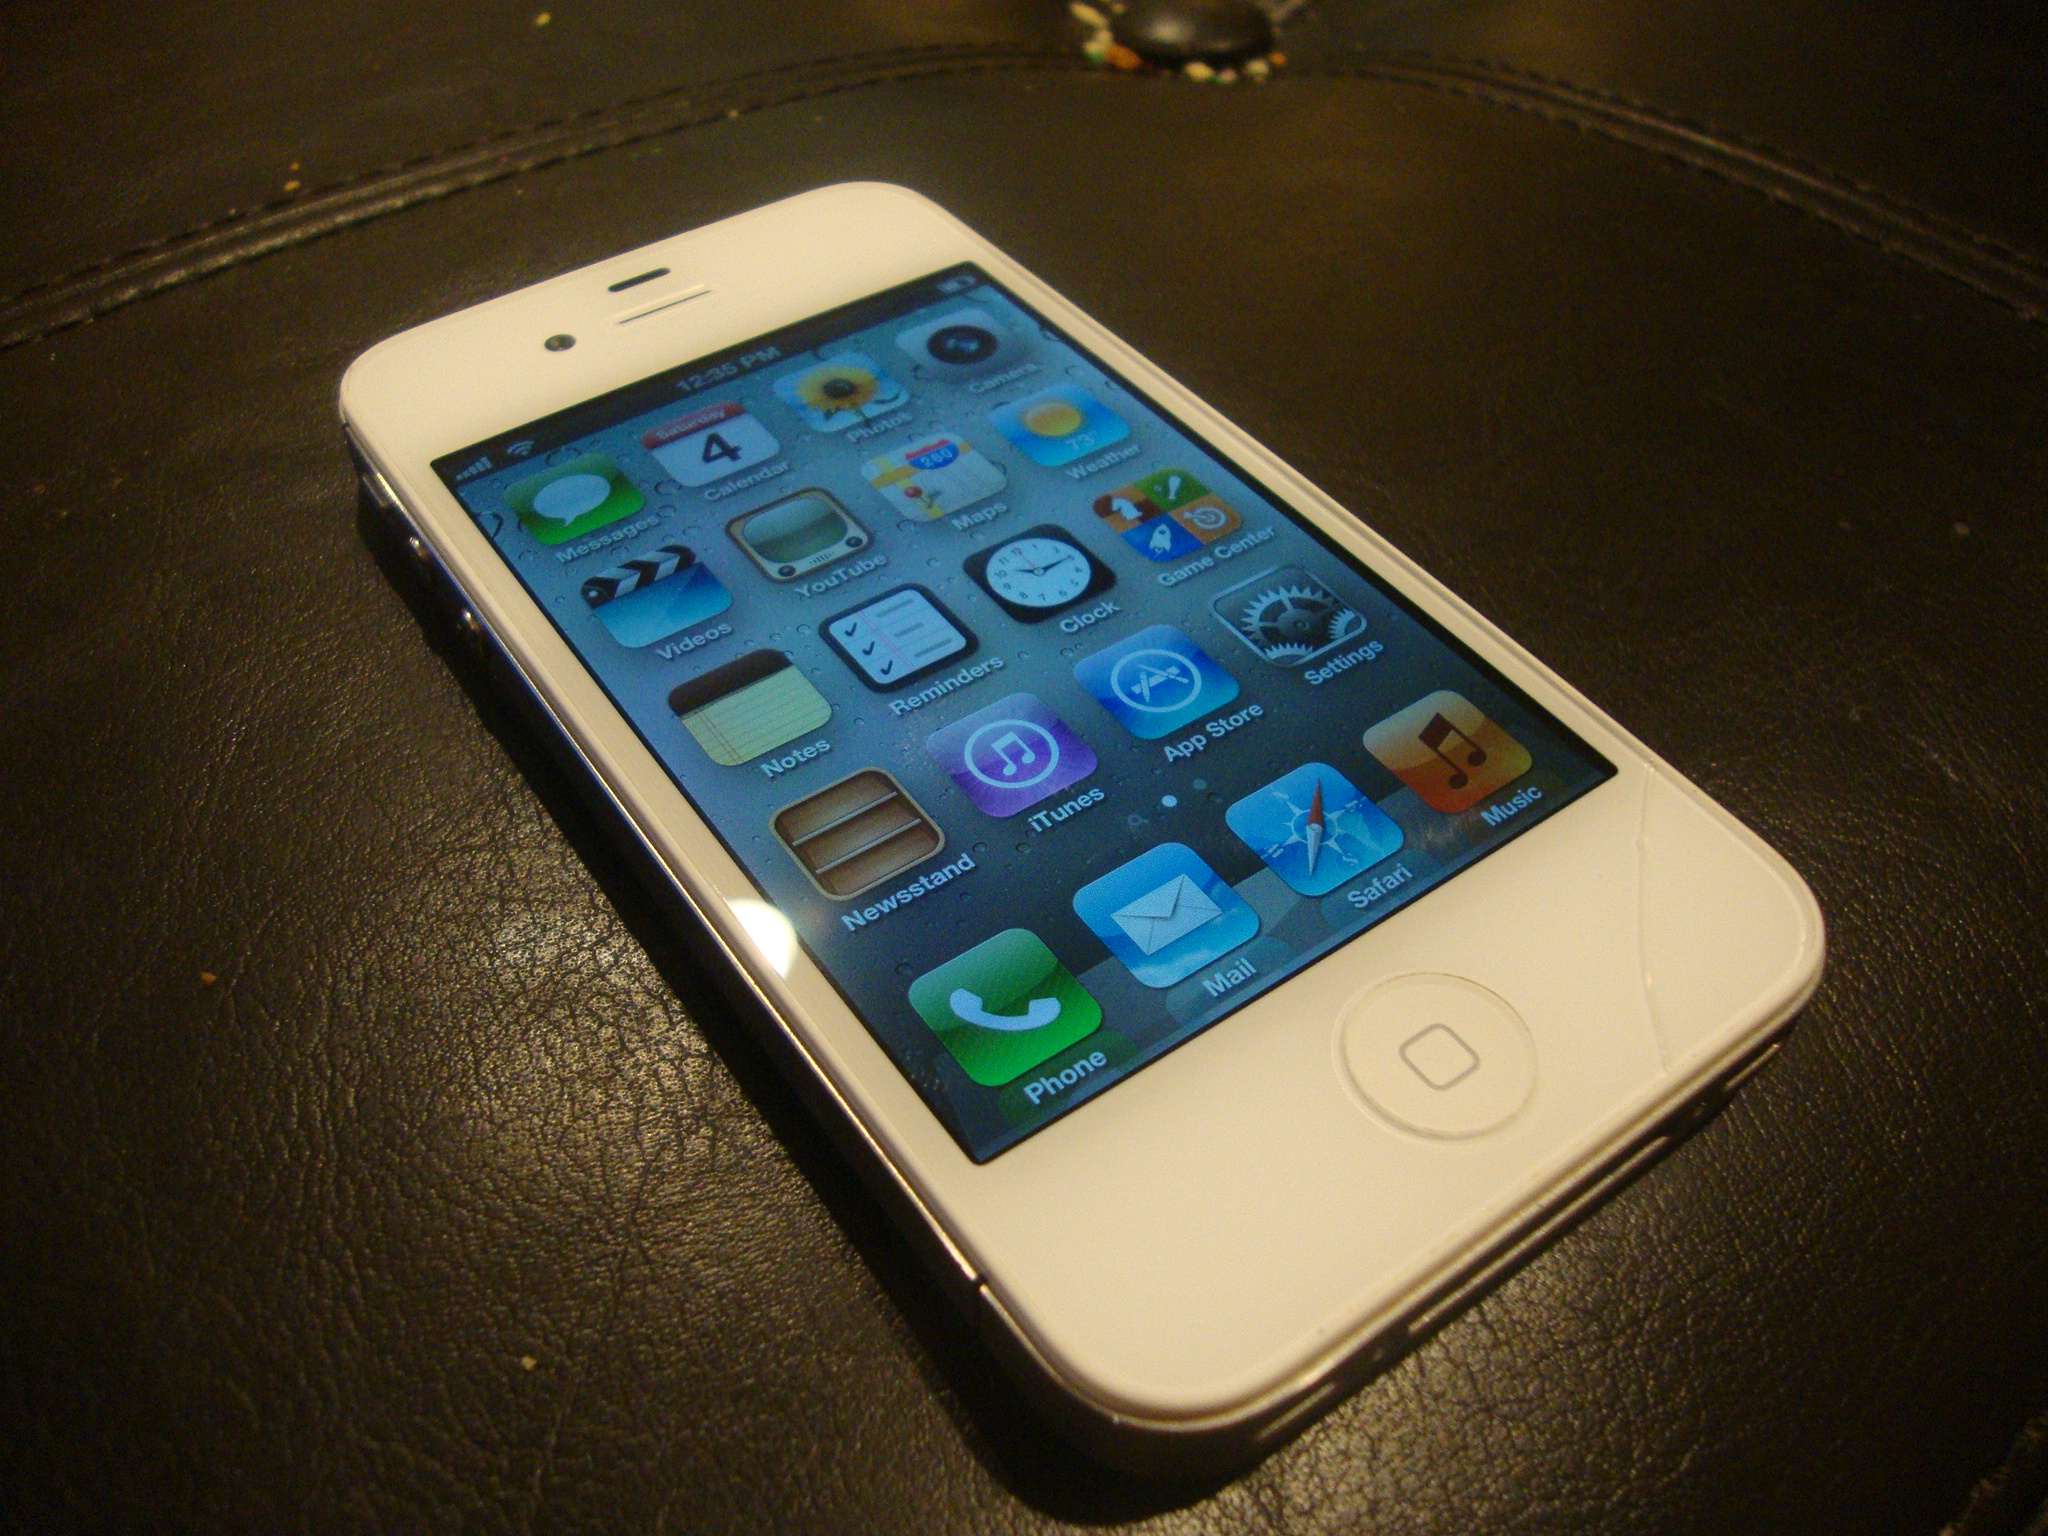 iphone 4 for sale without contract for verizon white iphone 4 16gb bad esn 19292